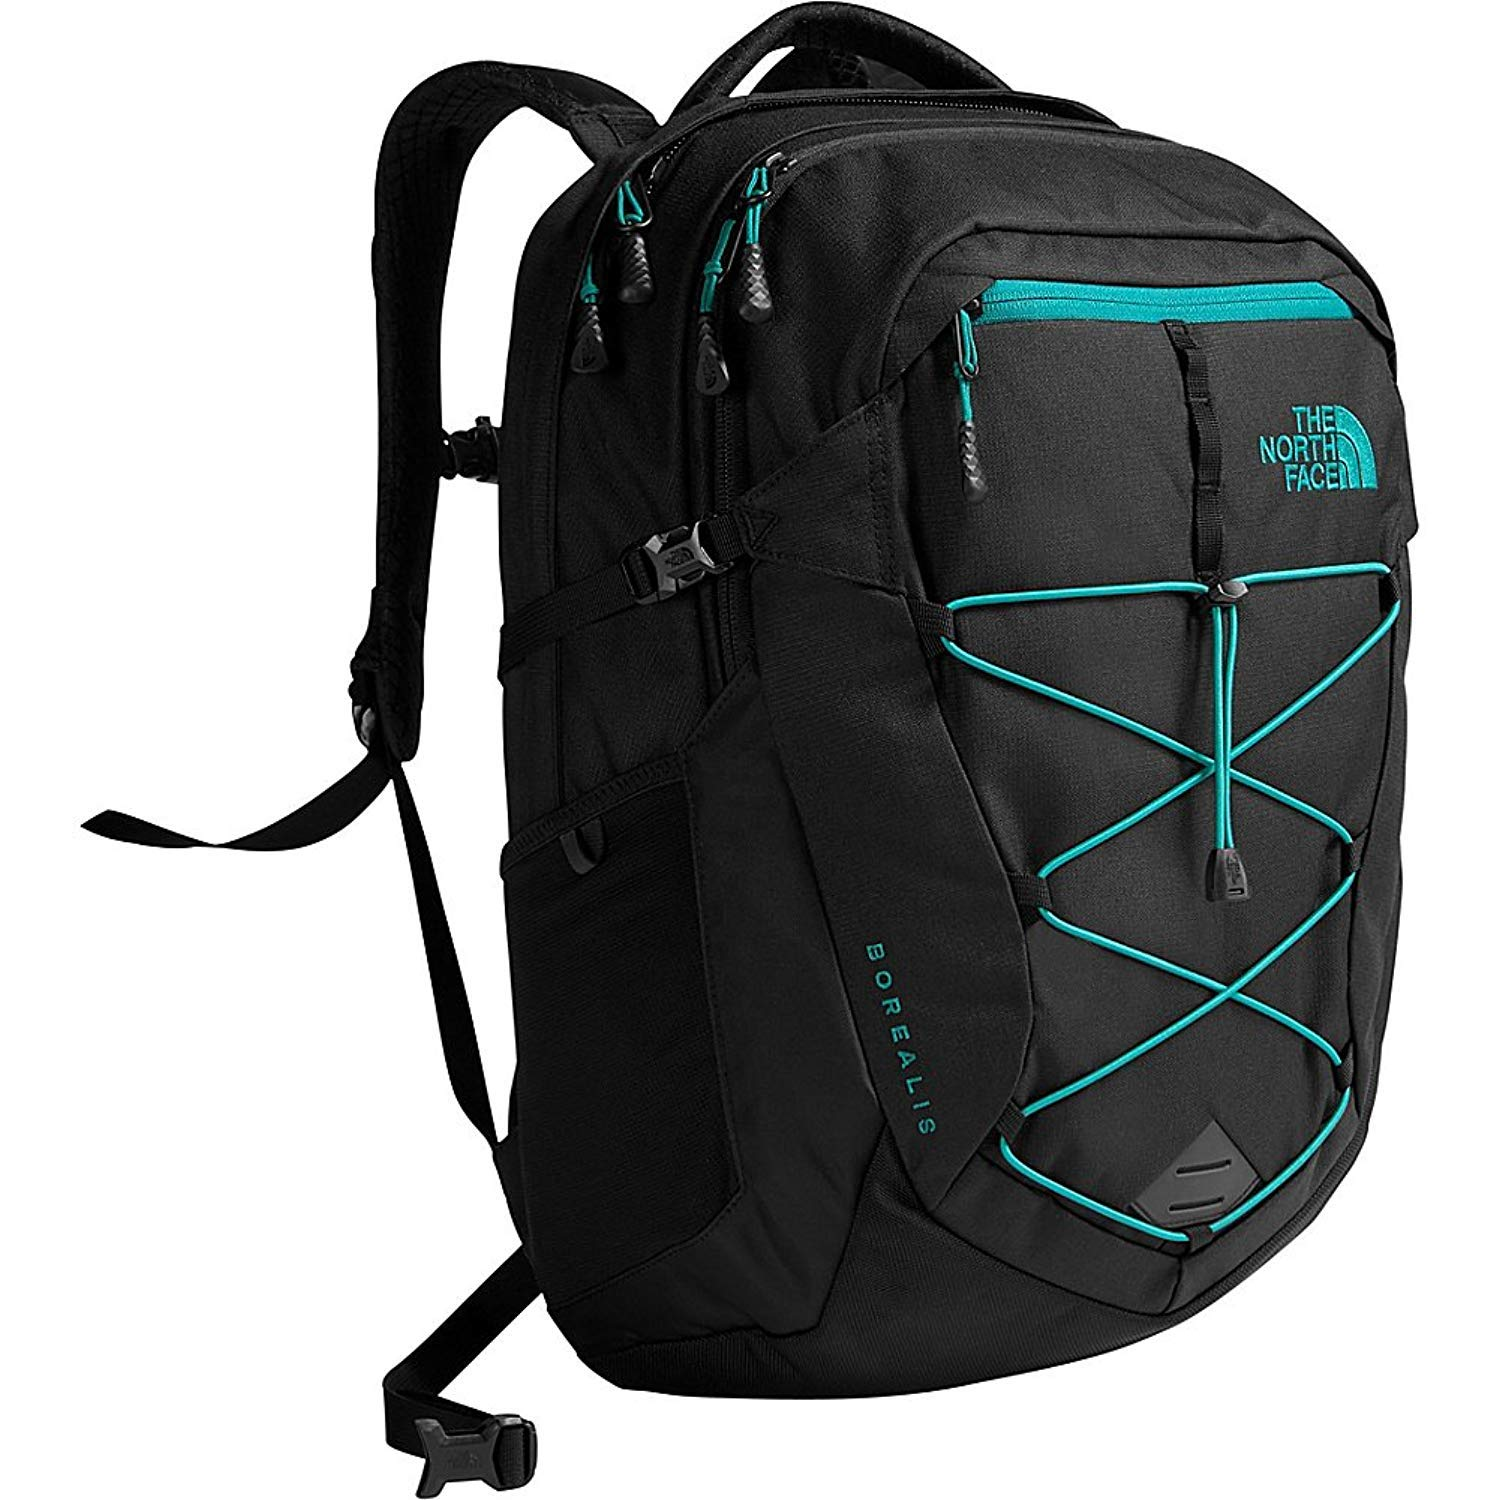 Amazon.com: The North Face Unisex Classic Borealis Backpack Student School Bag Black Heather Fanfare green: Sunshining99